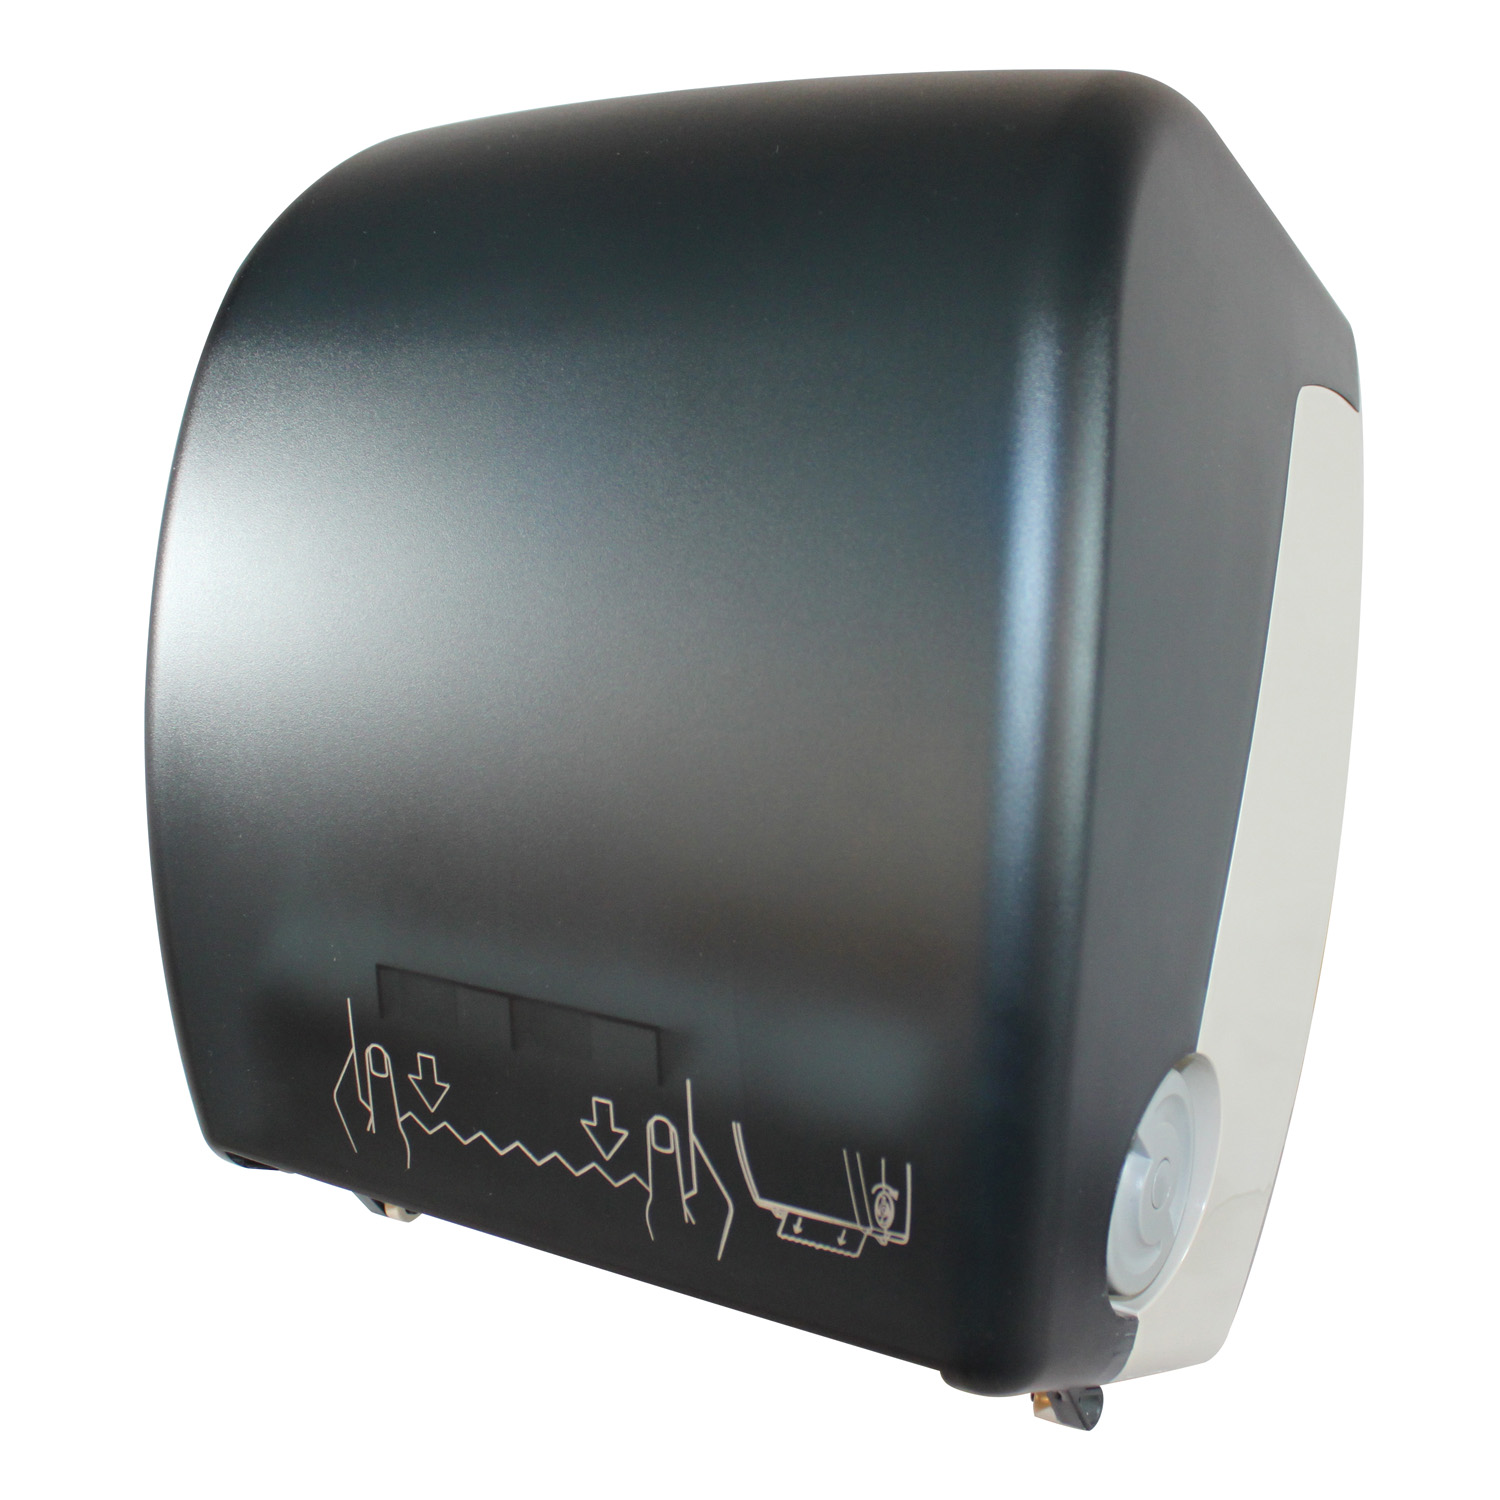 Impact Products 5015 paper towel dispenser